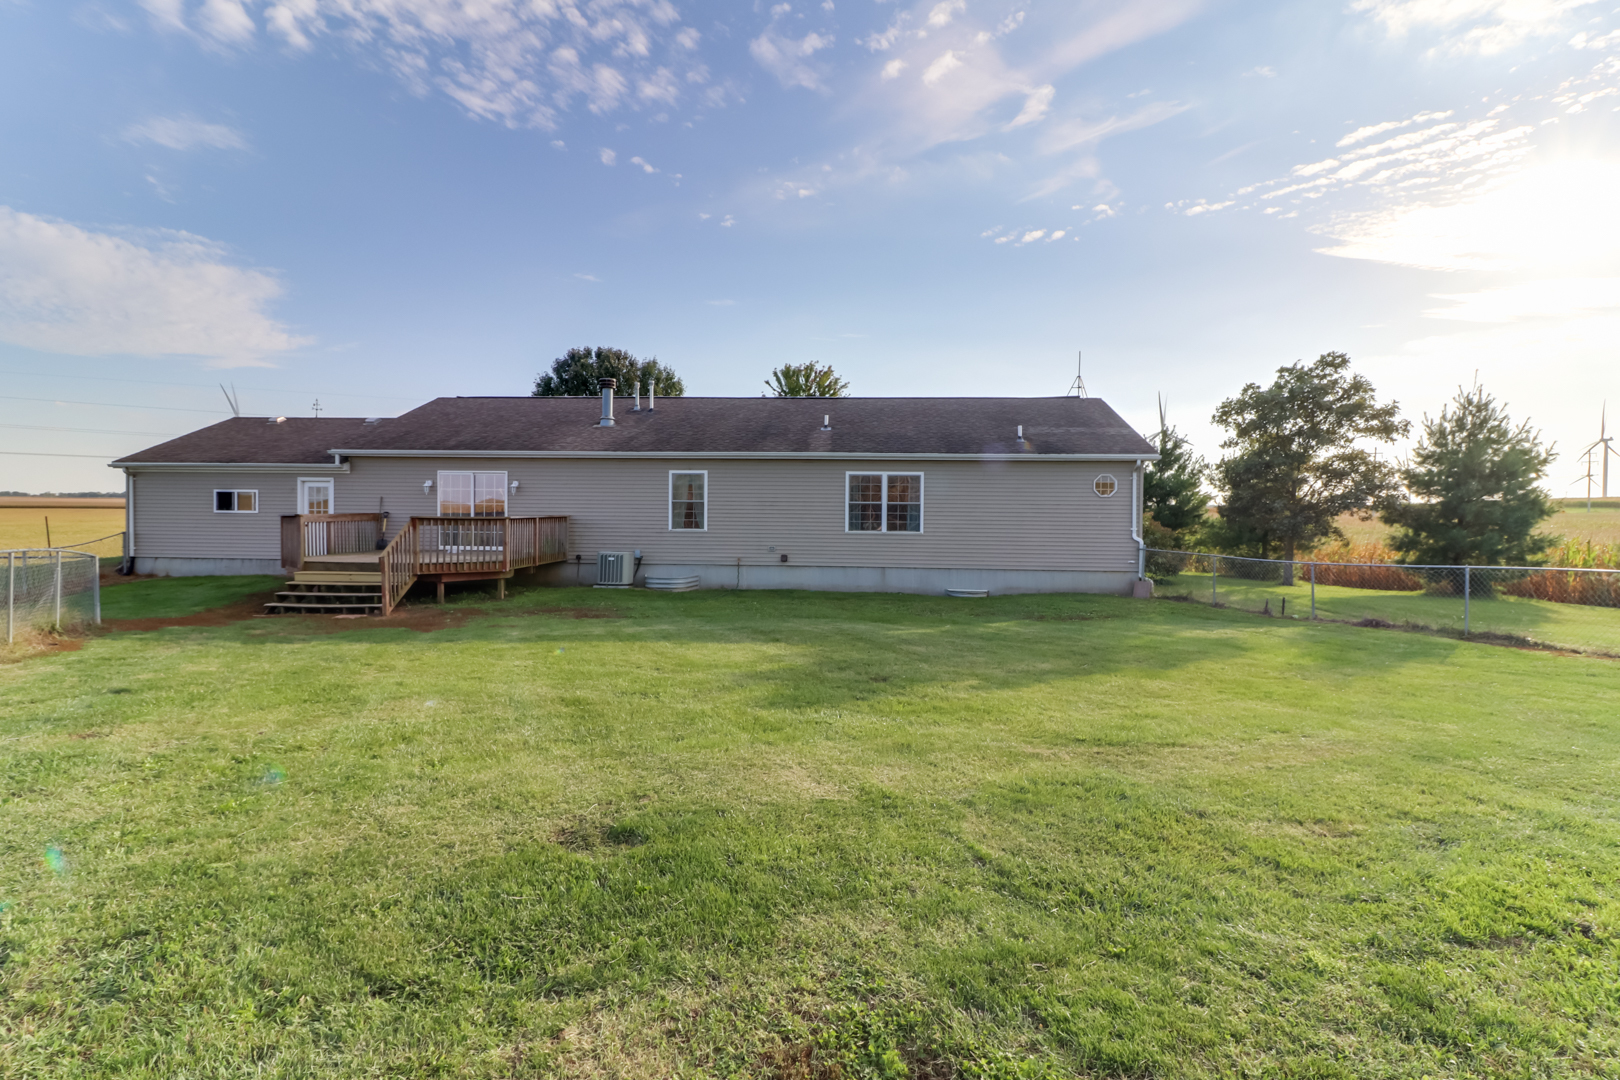 28810 East 1050 North, Ellsworth, Illinois, 61737